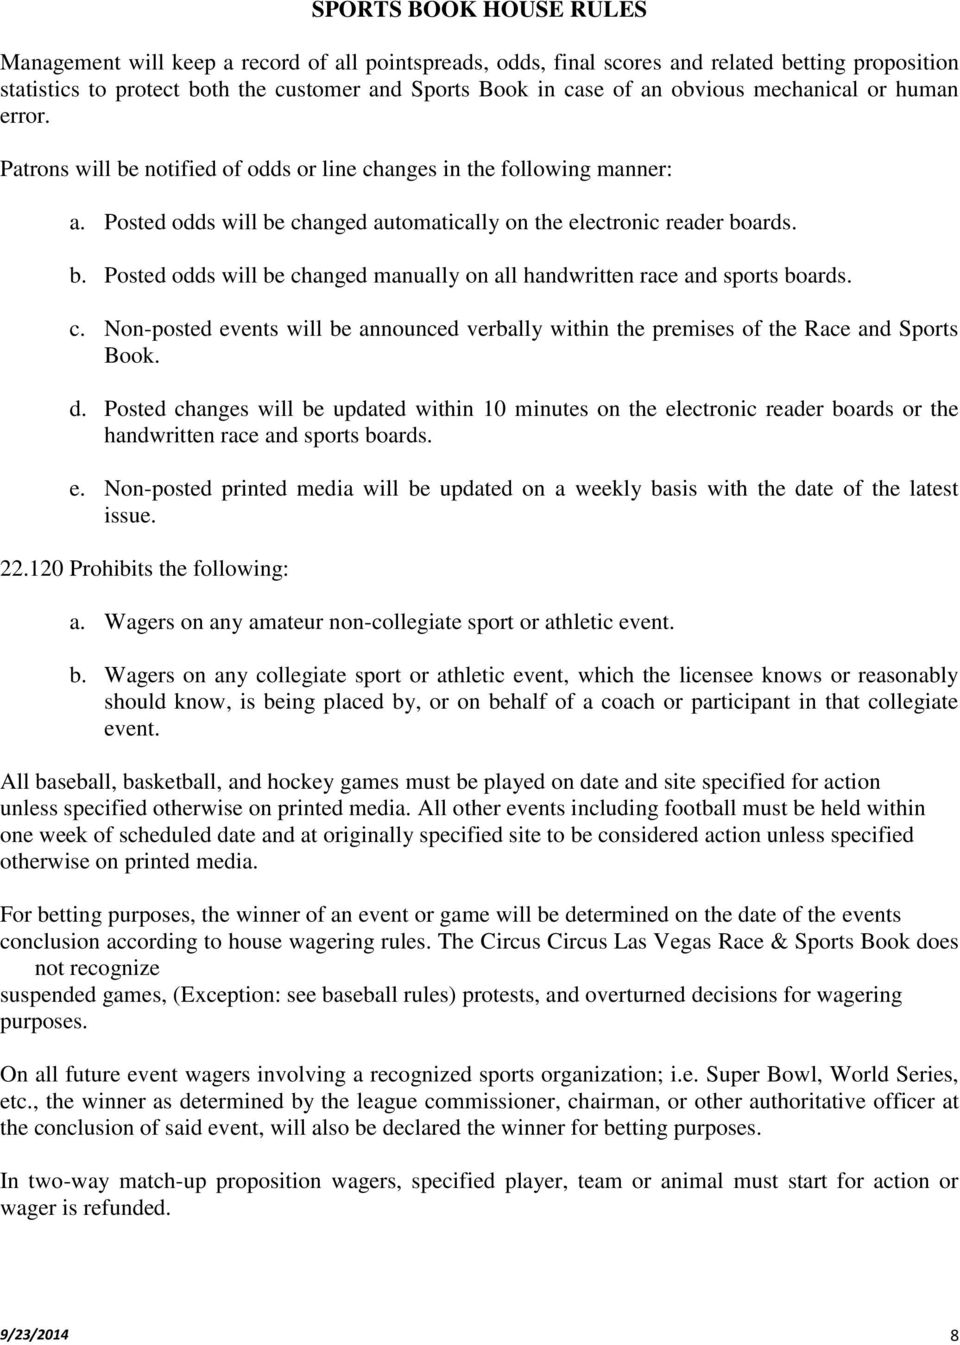 CIRCUS CIRCUS LAS VEGAS RACE AND SPORTS BOOK HOUSE RULES - PDF